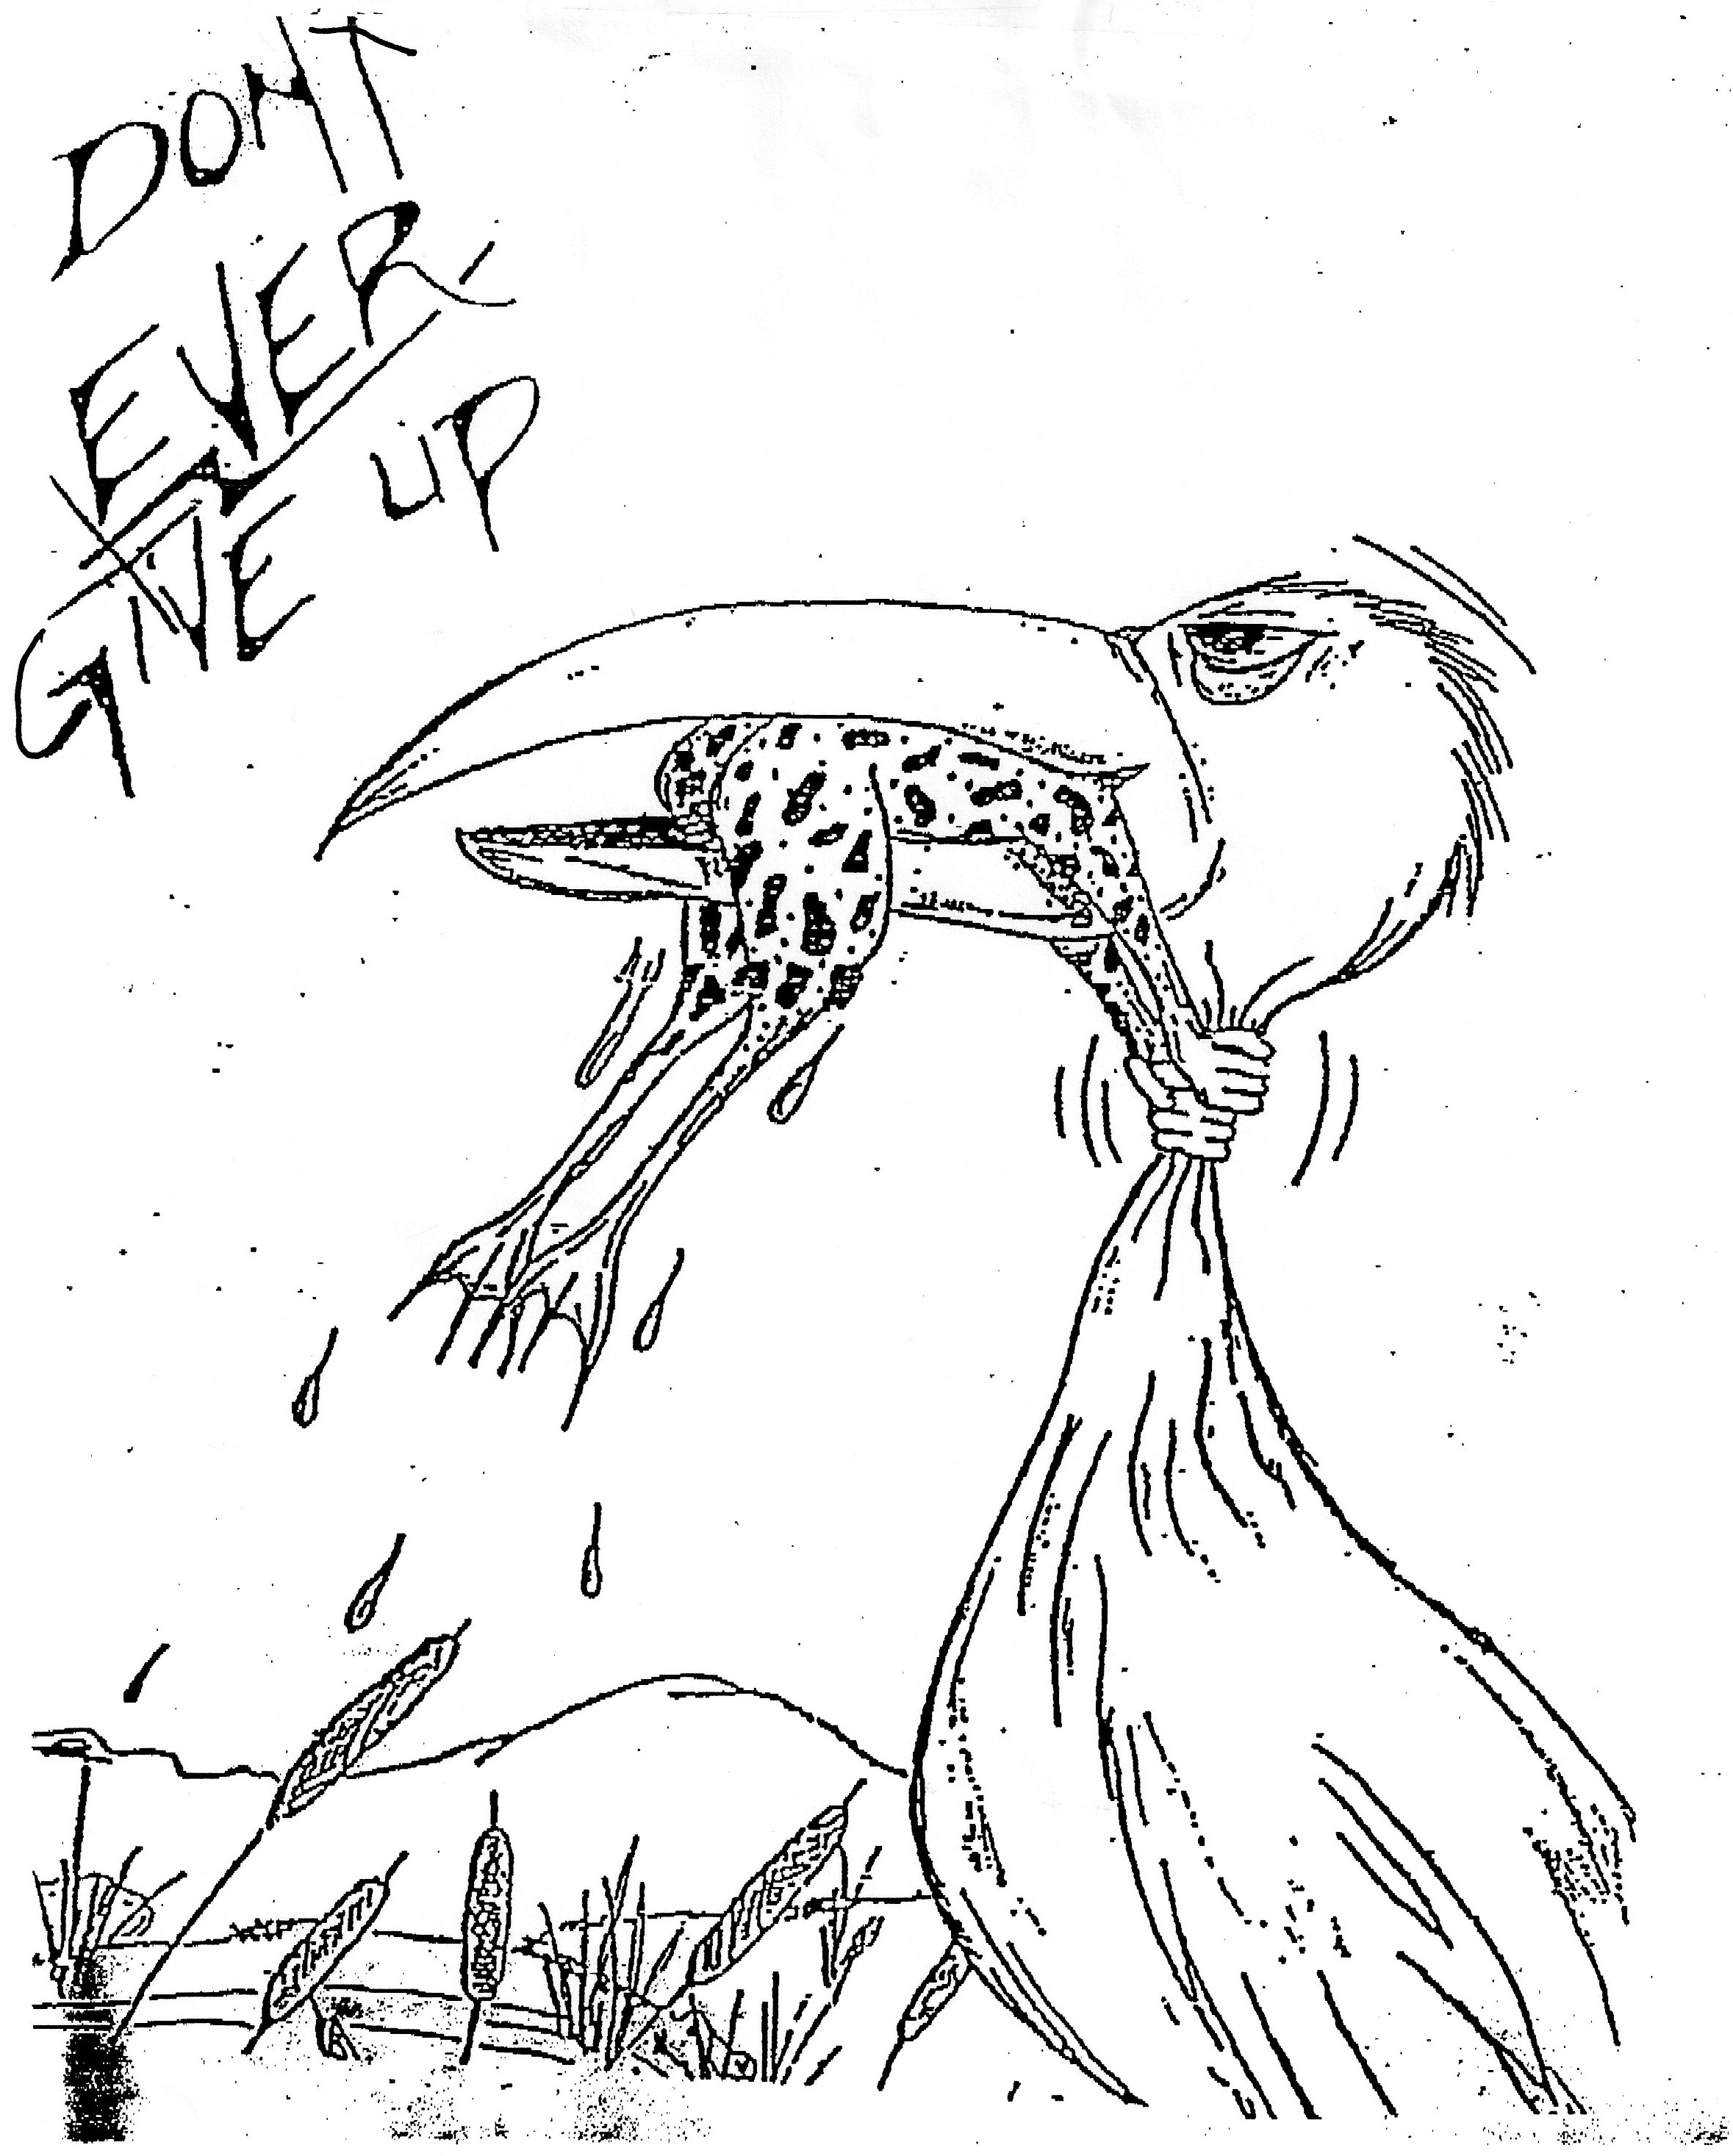 This drawing of a Great Blue Heron, which was posted on a bulletin board in the hospital that cared for my mother after her stroke, is accurate. Great Blue Herons will eat any small animal they can get their bills around.